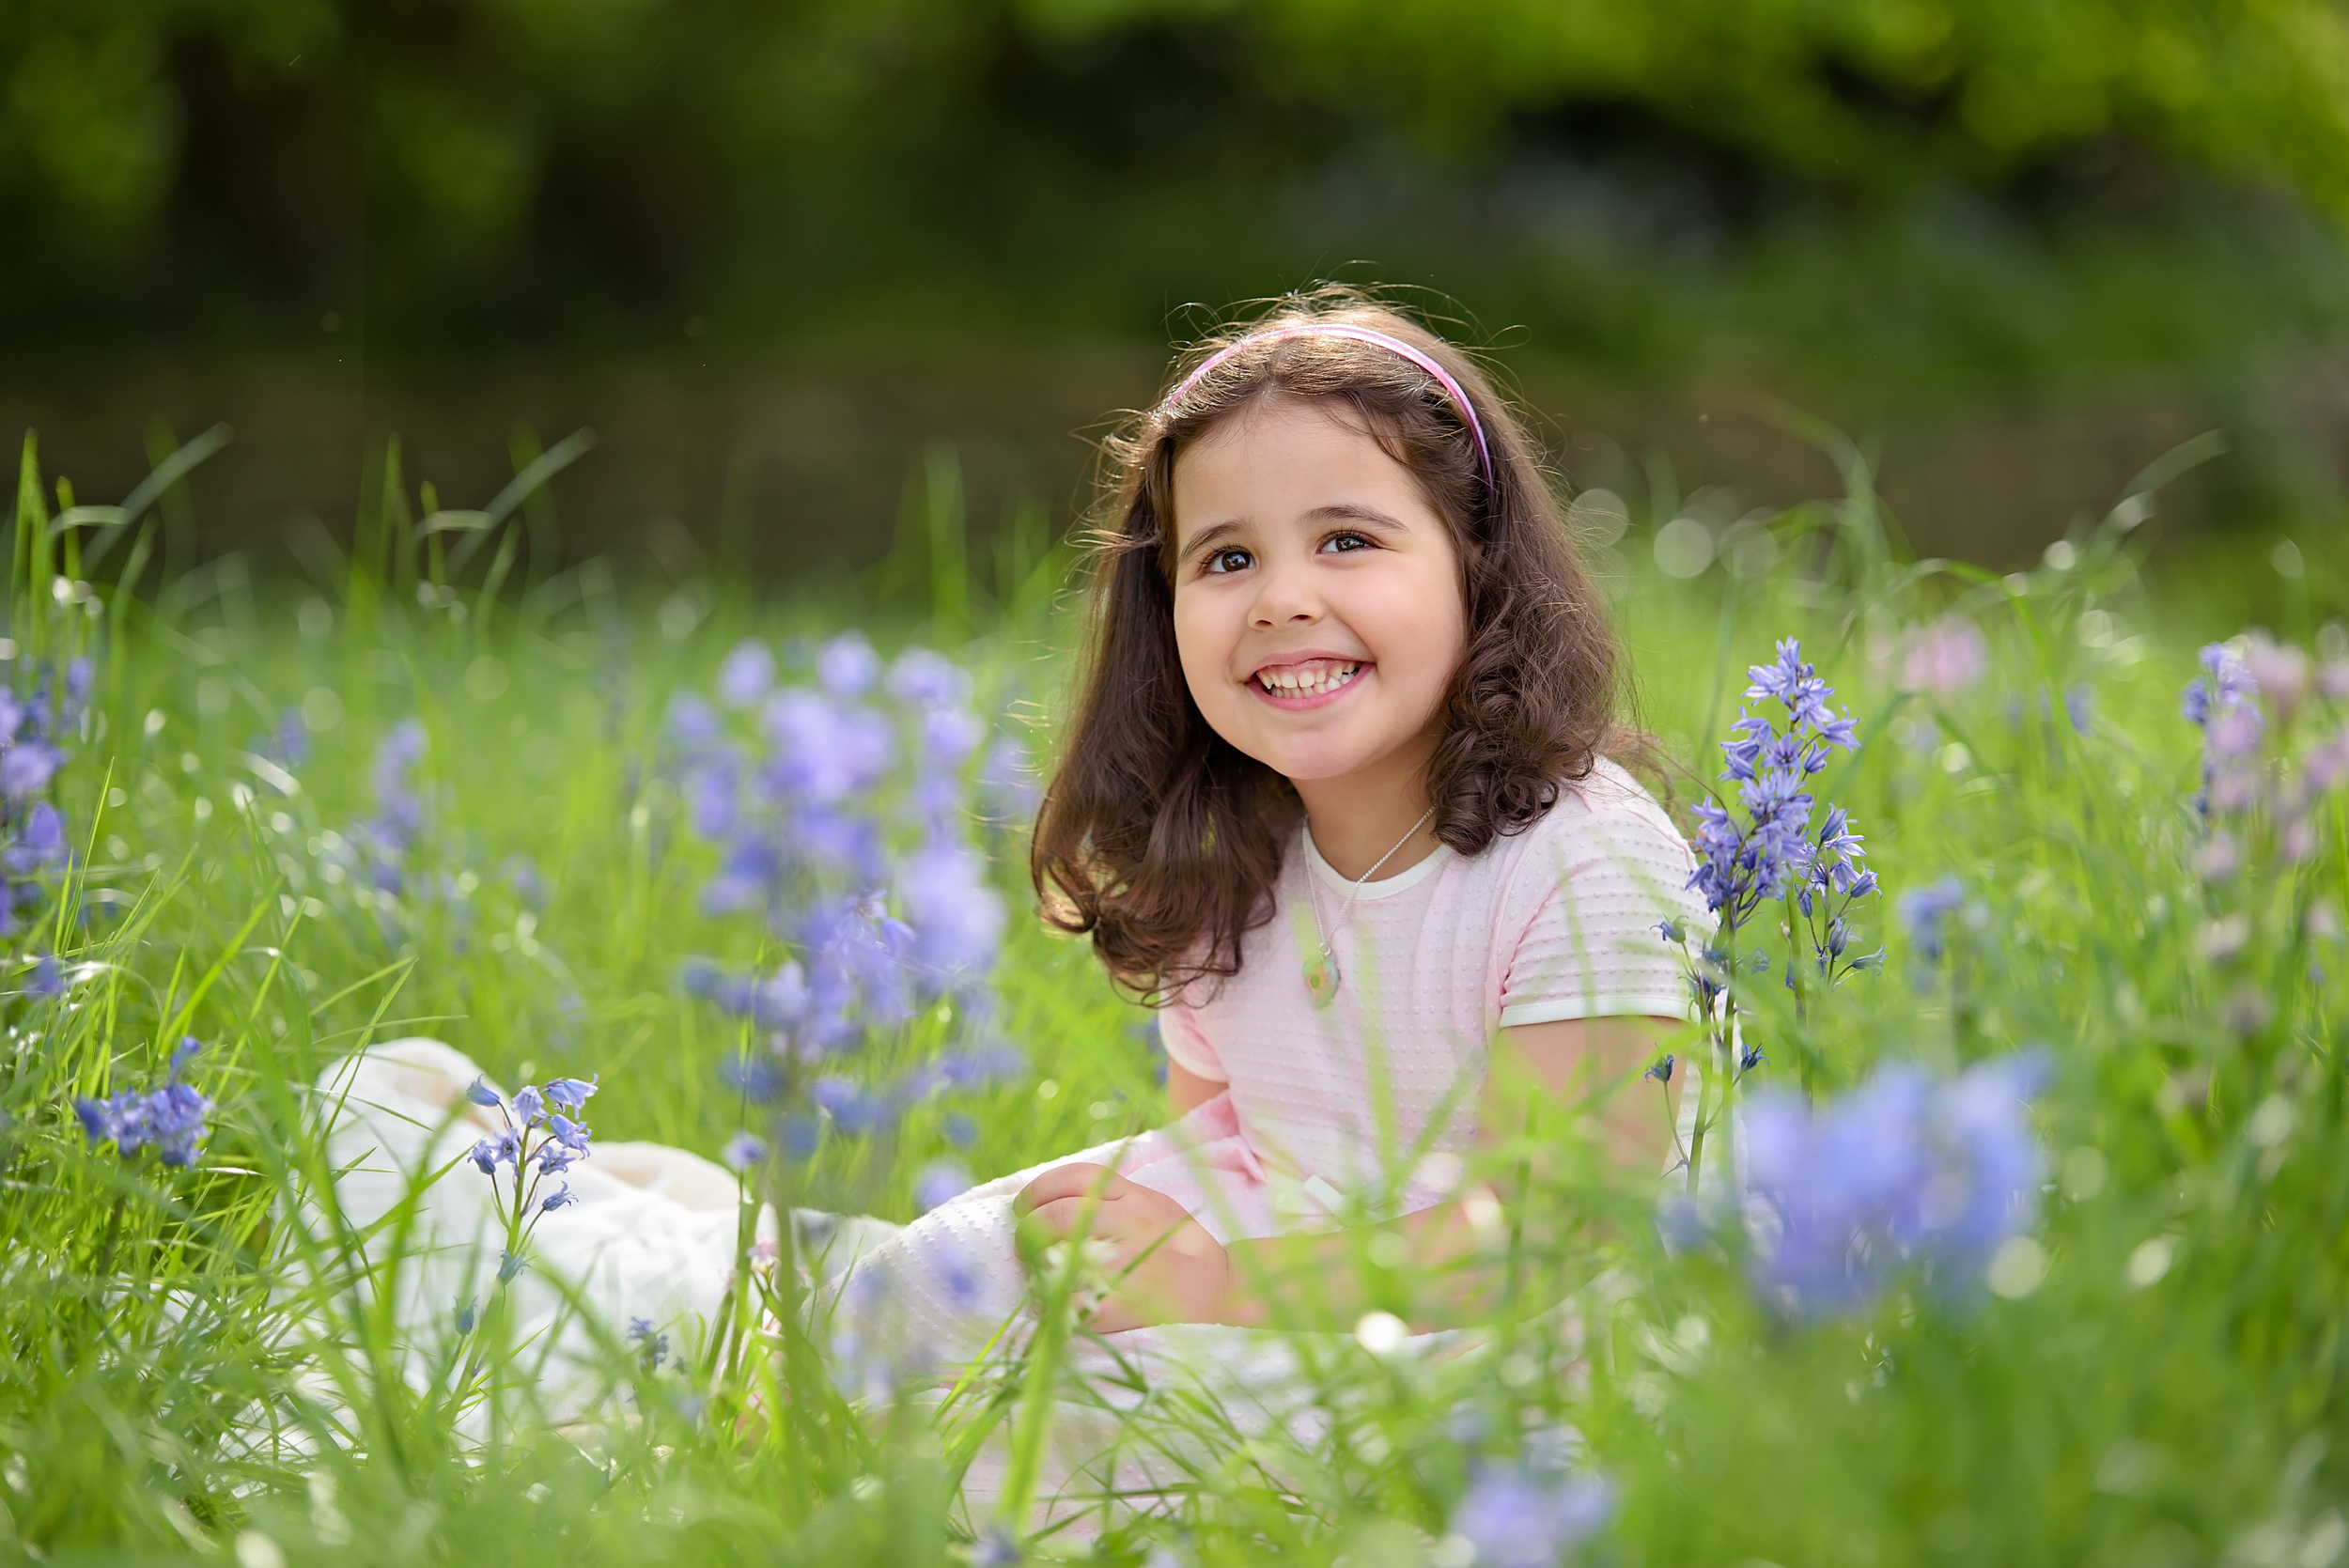 Child portraits in bluebells, London